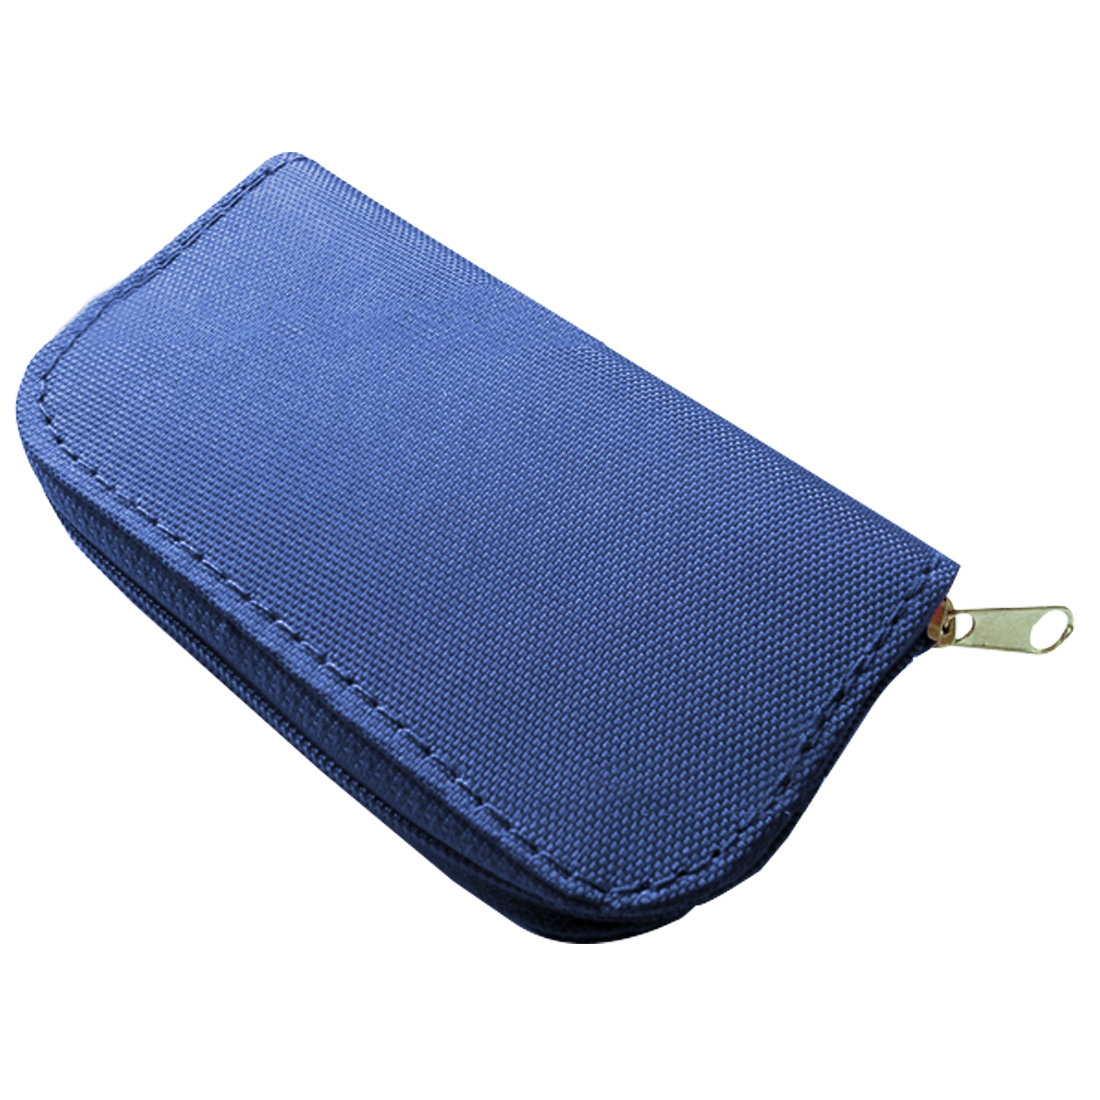 Etmakit Blue Memory Card Storage Carrying Case Holder Wallet 18slots + 4 Slots For CF/SD/SDHC/MS/DS 3DS Game Accessory